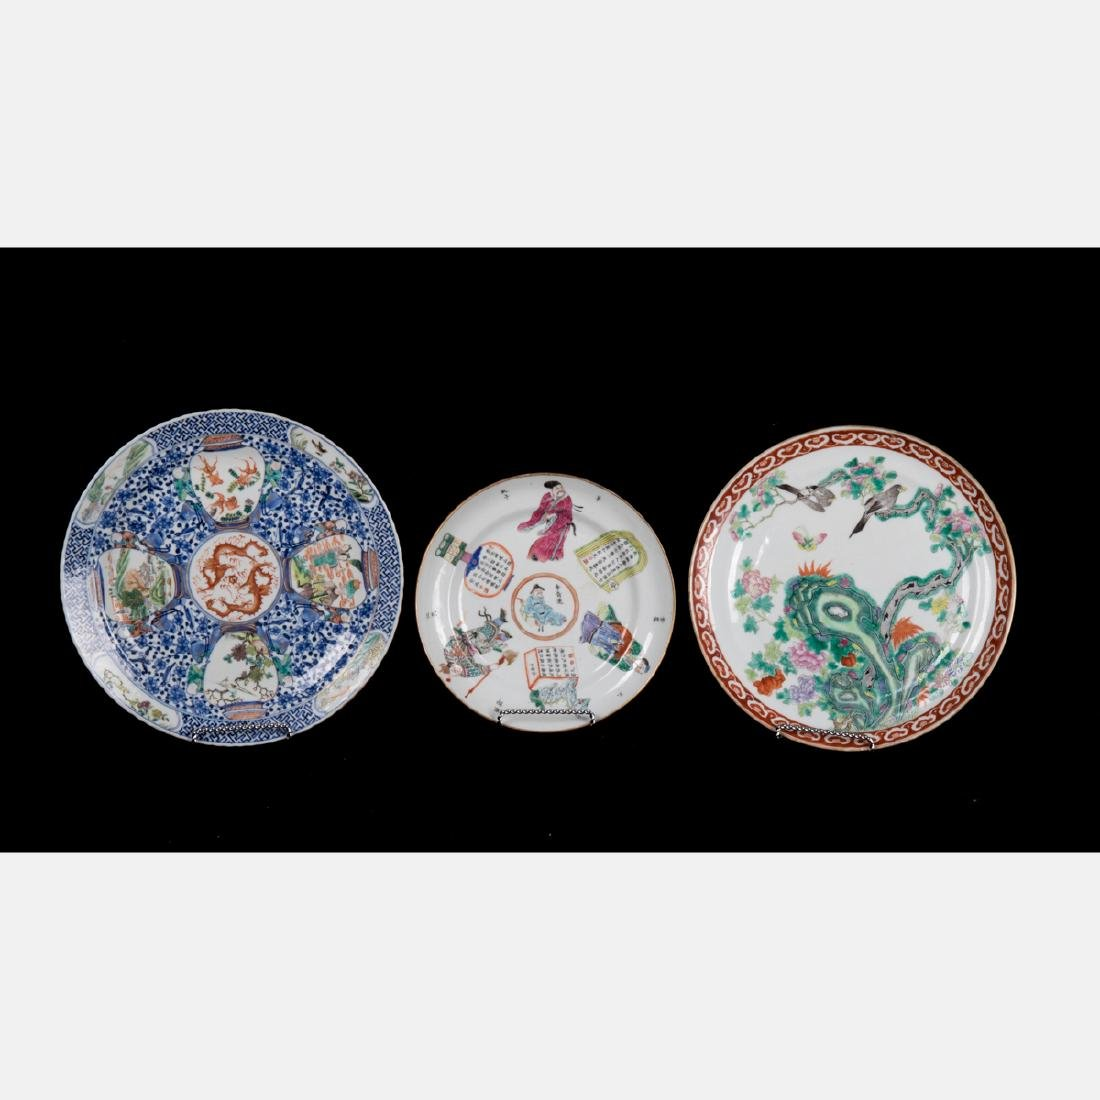 A Group of Three Chinese Porcelain Plates, 19th